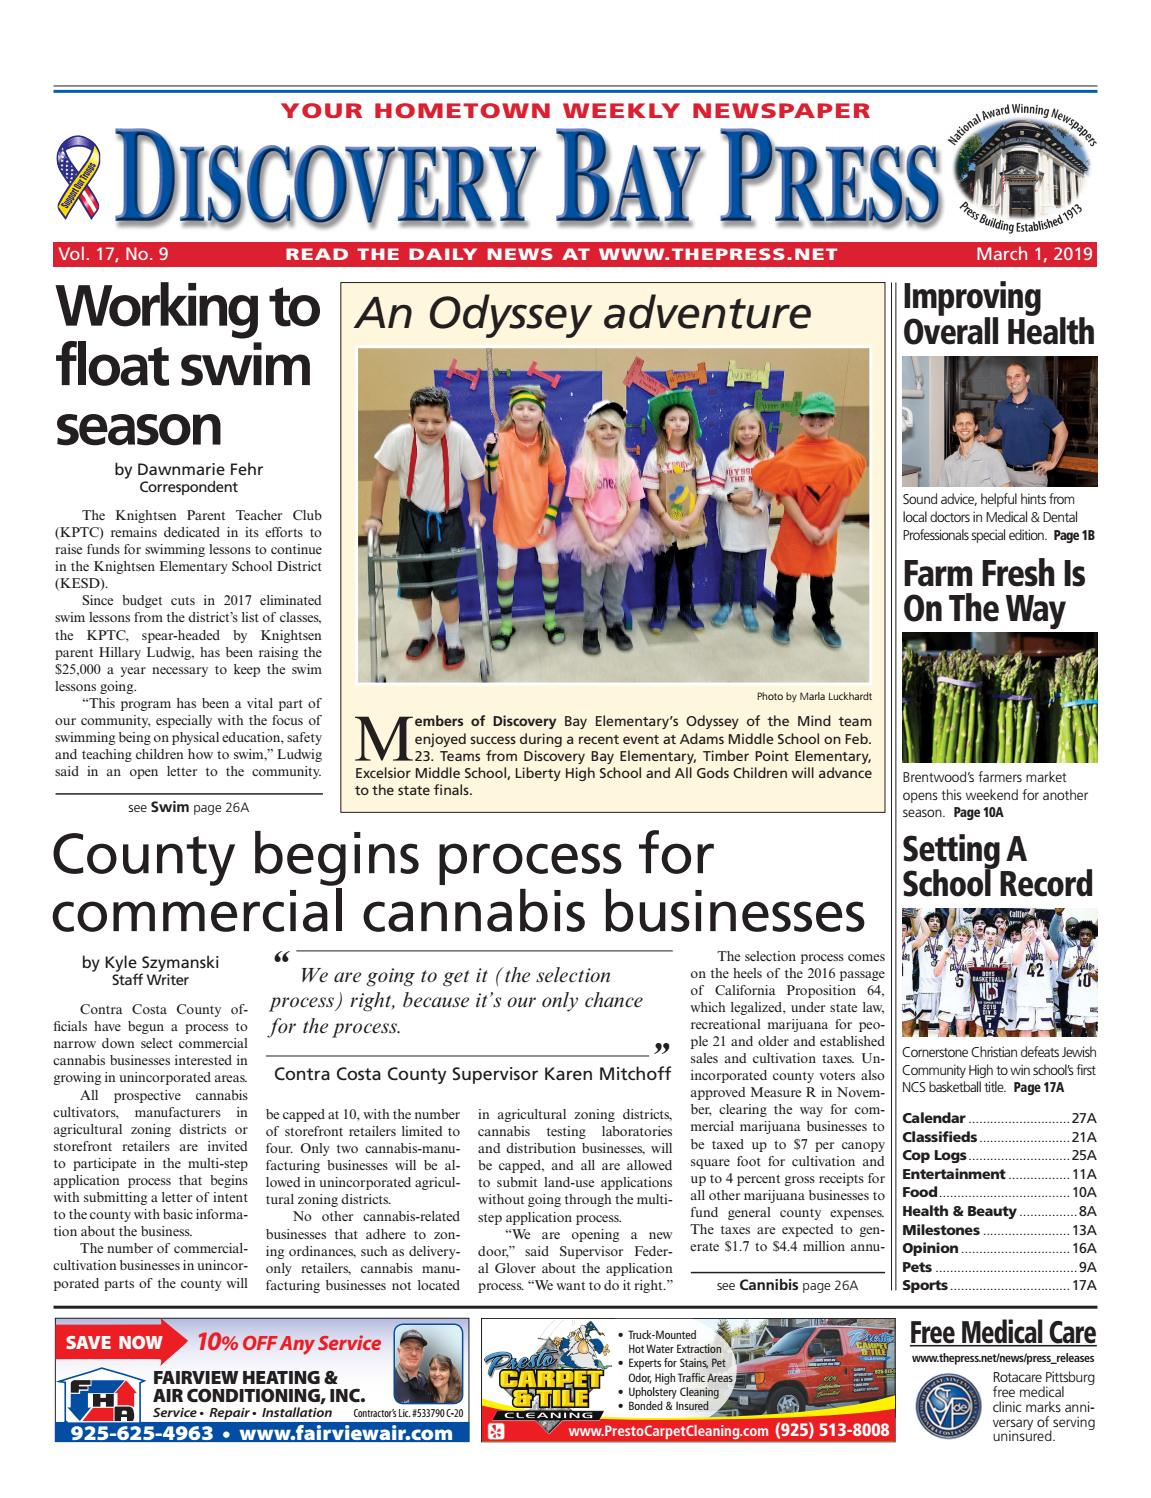 Discovery Bay Press 03.01.19 by Brentwood Press   Publishing - issuu 347b5148d